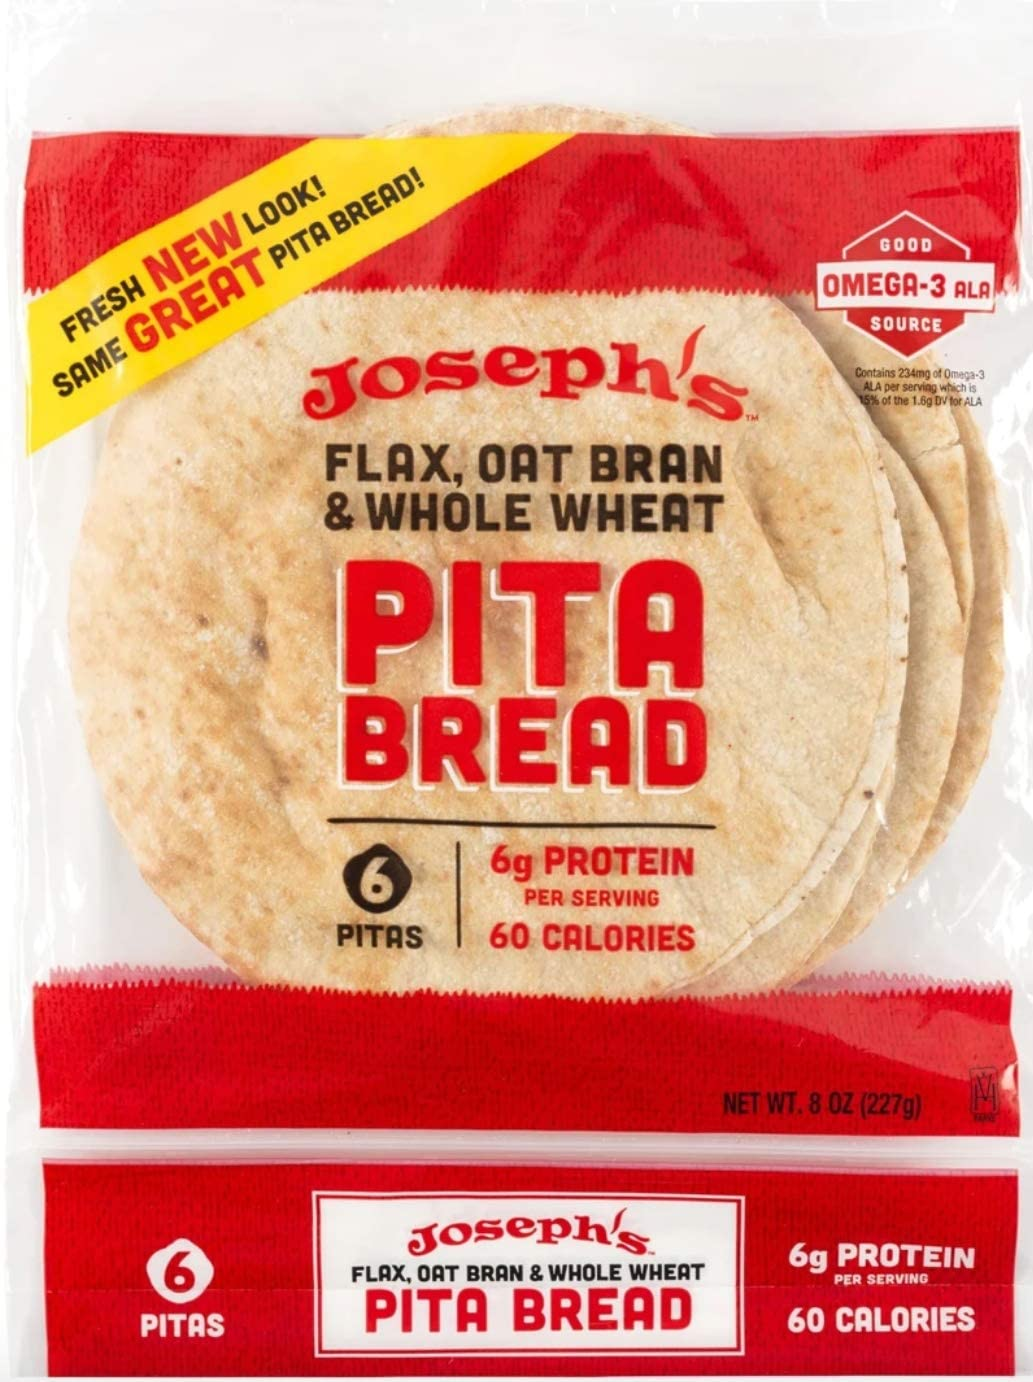 Joseph S Reduced Carb Flax Oat Bran Whole Wheat Pita Bread 6 Loaves Low Fat Low Calories Amazon Co Uk Grocery